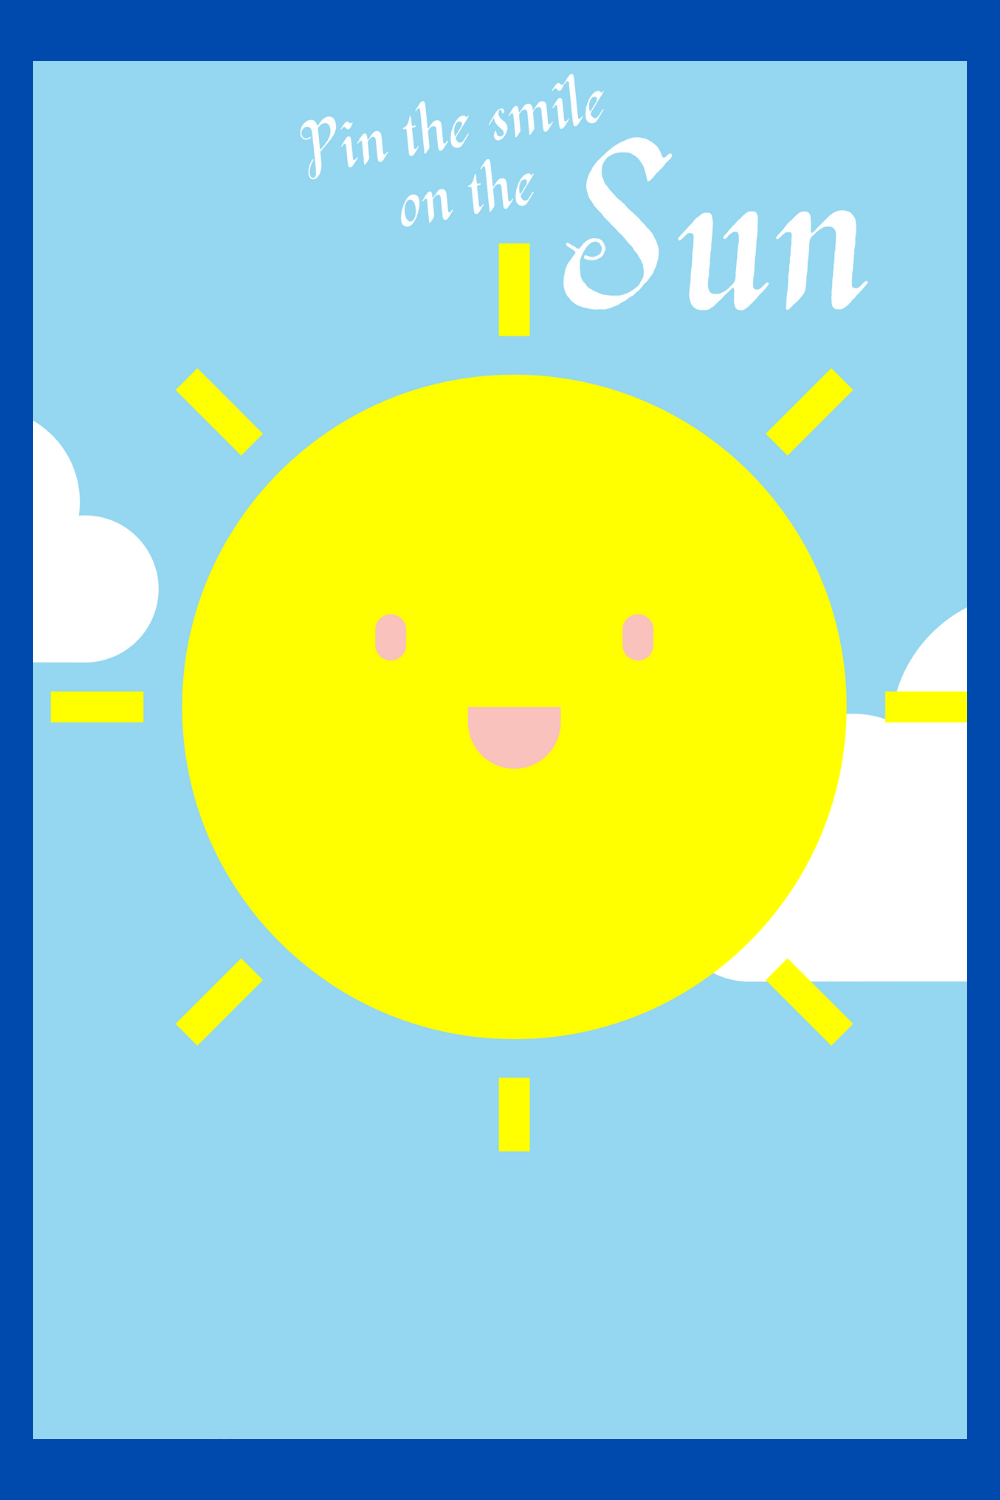 sunshine birthday party game ideas for kids